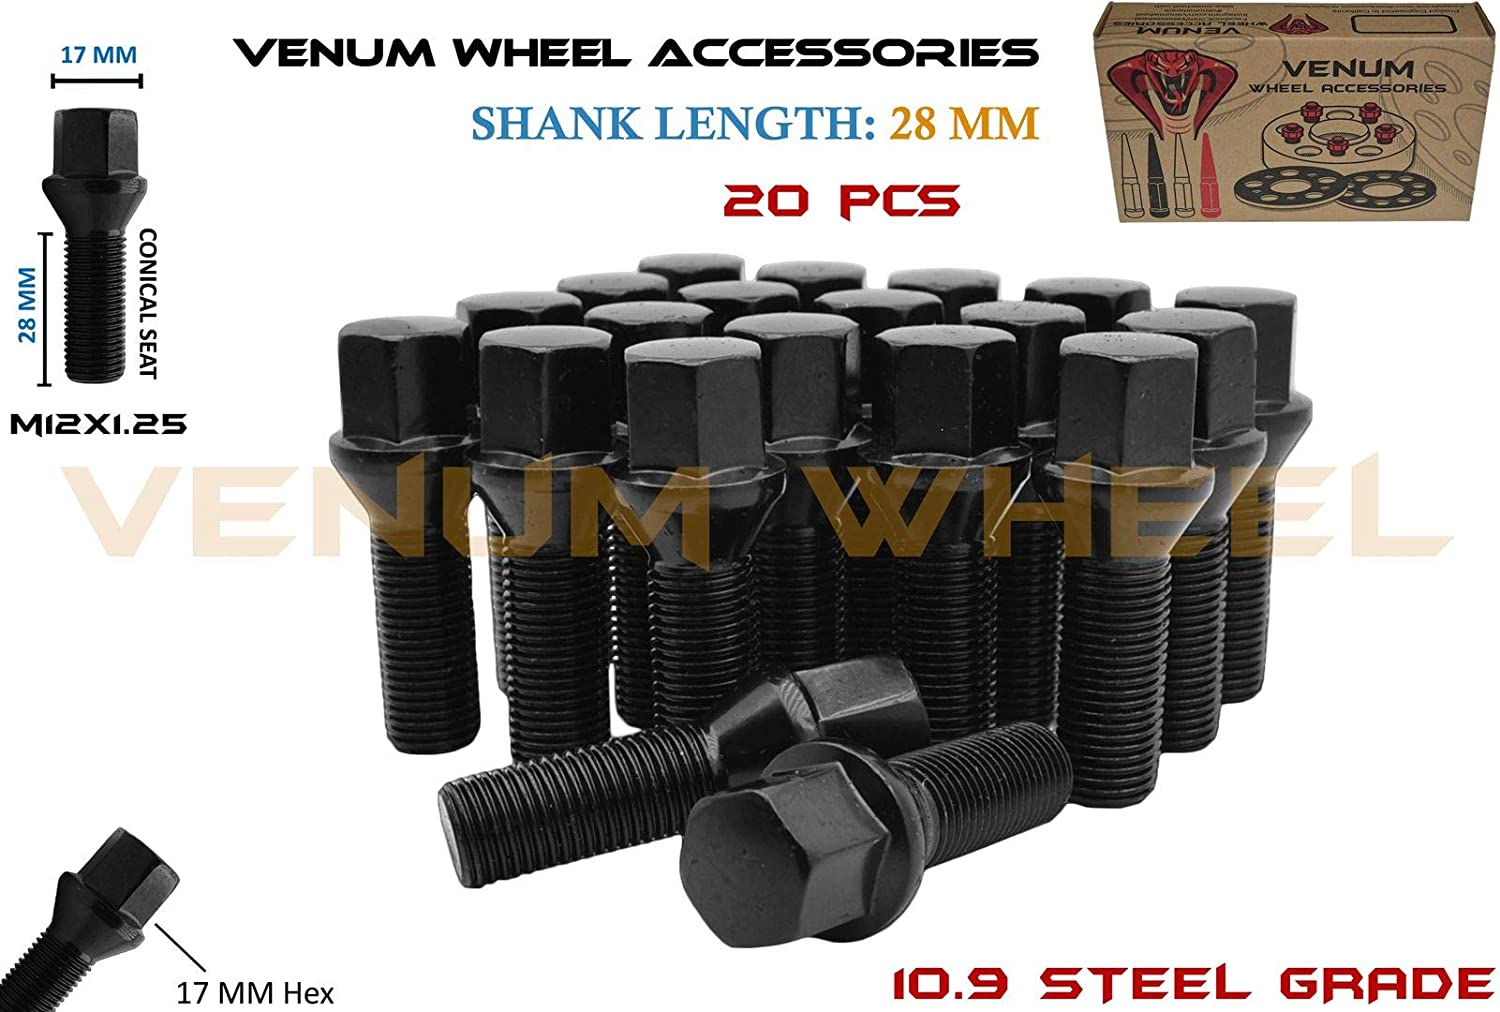 Complete Set of M12x1.25 Black Powder Coated Tapered Conical Seat Lug Bolts 28 MM Factory Shank Length Works With Jeep Fiat Dodge Chrysler Alfa Romeo Factory & Aftermarket Wheels